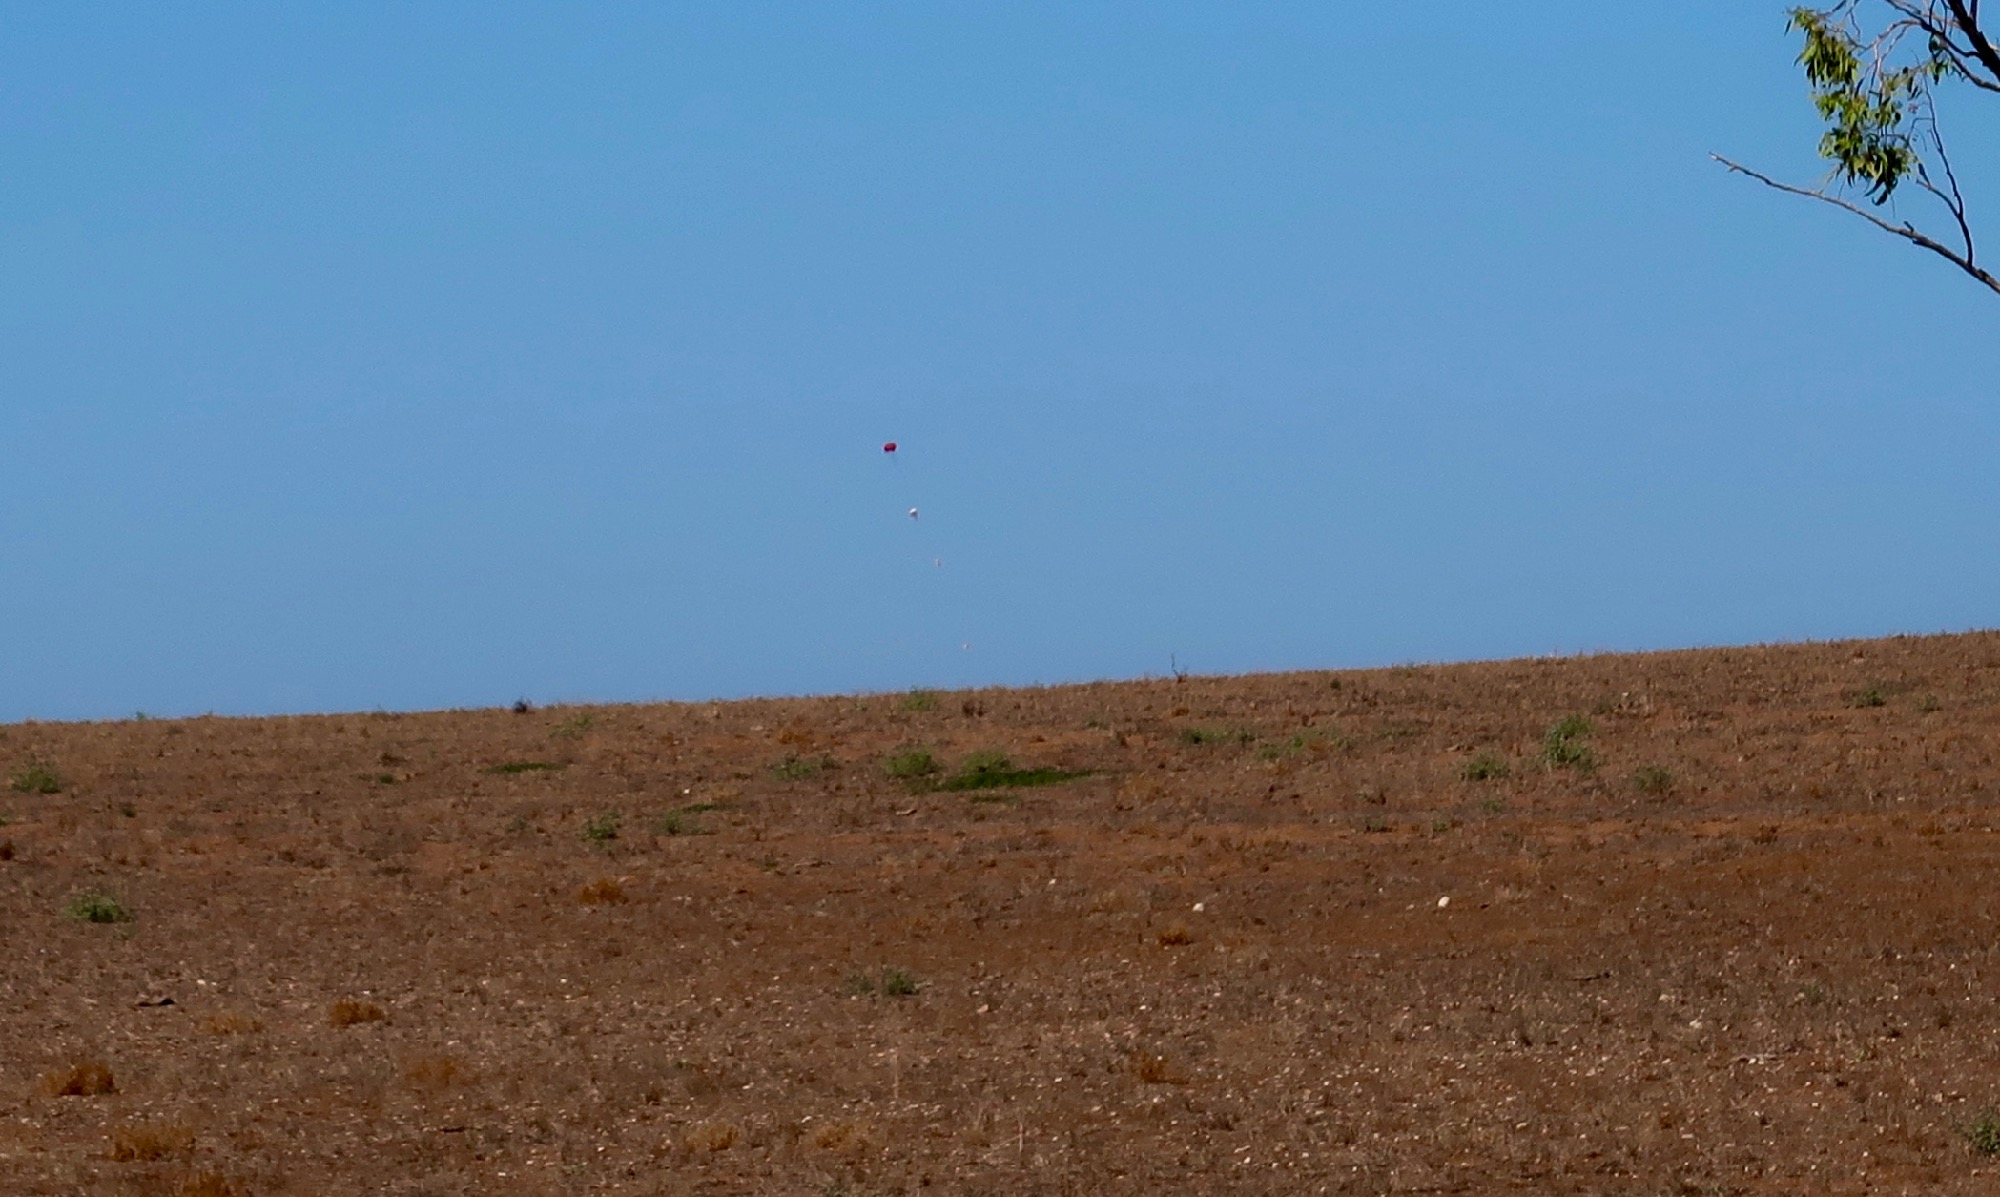 All payloads sighted just before landing.